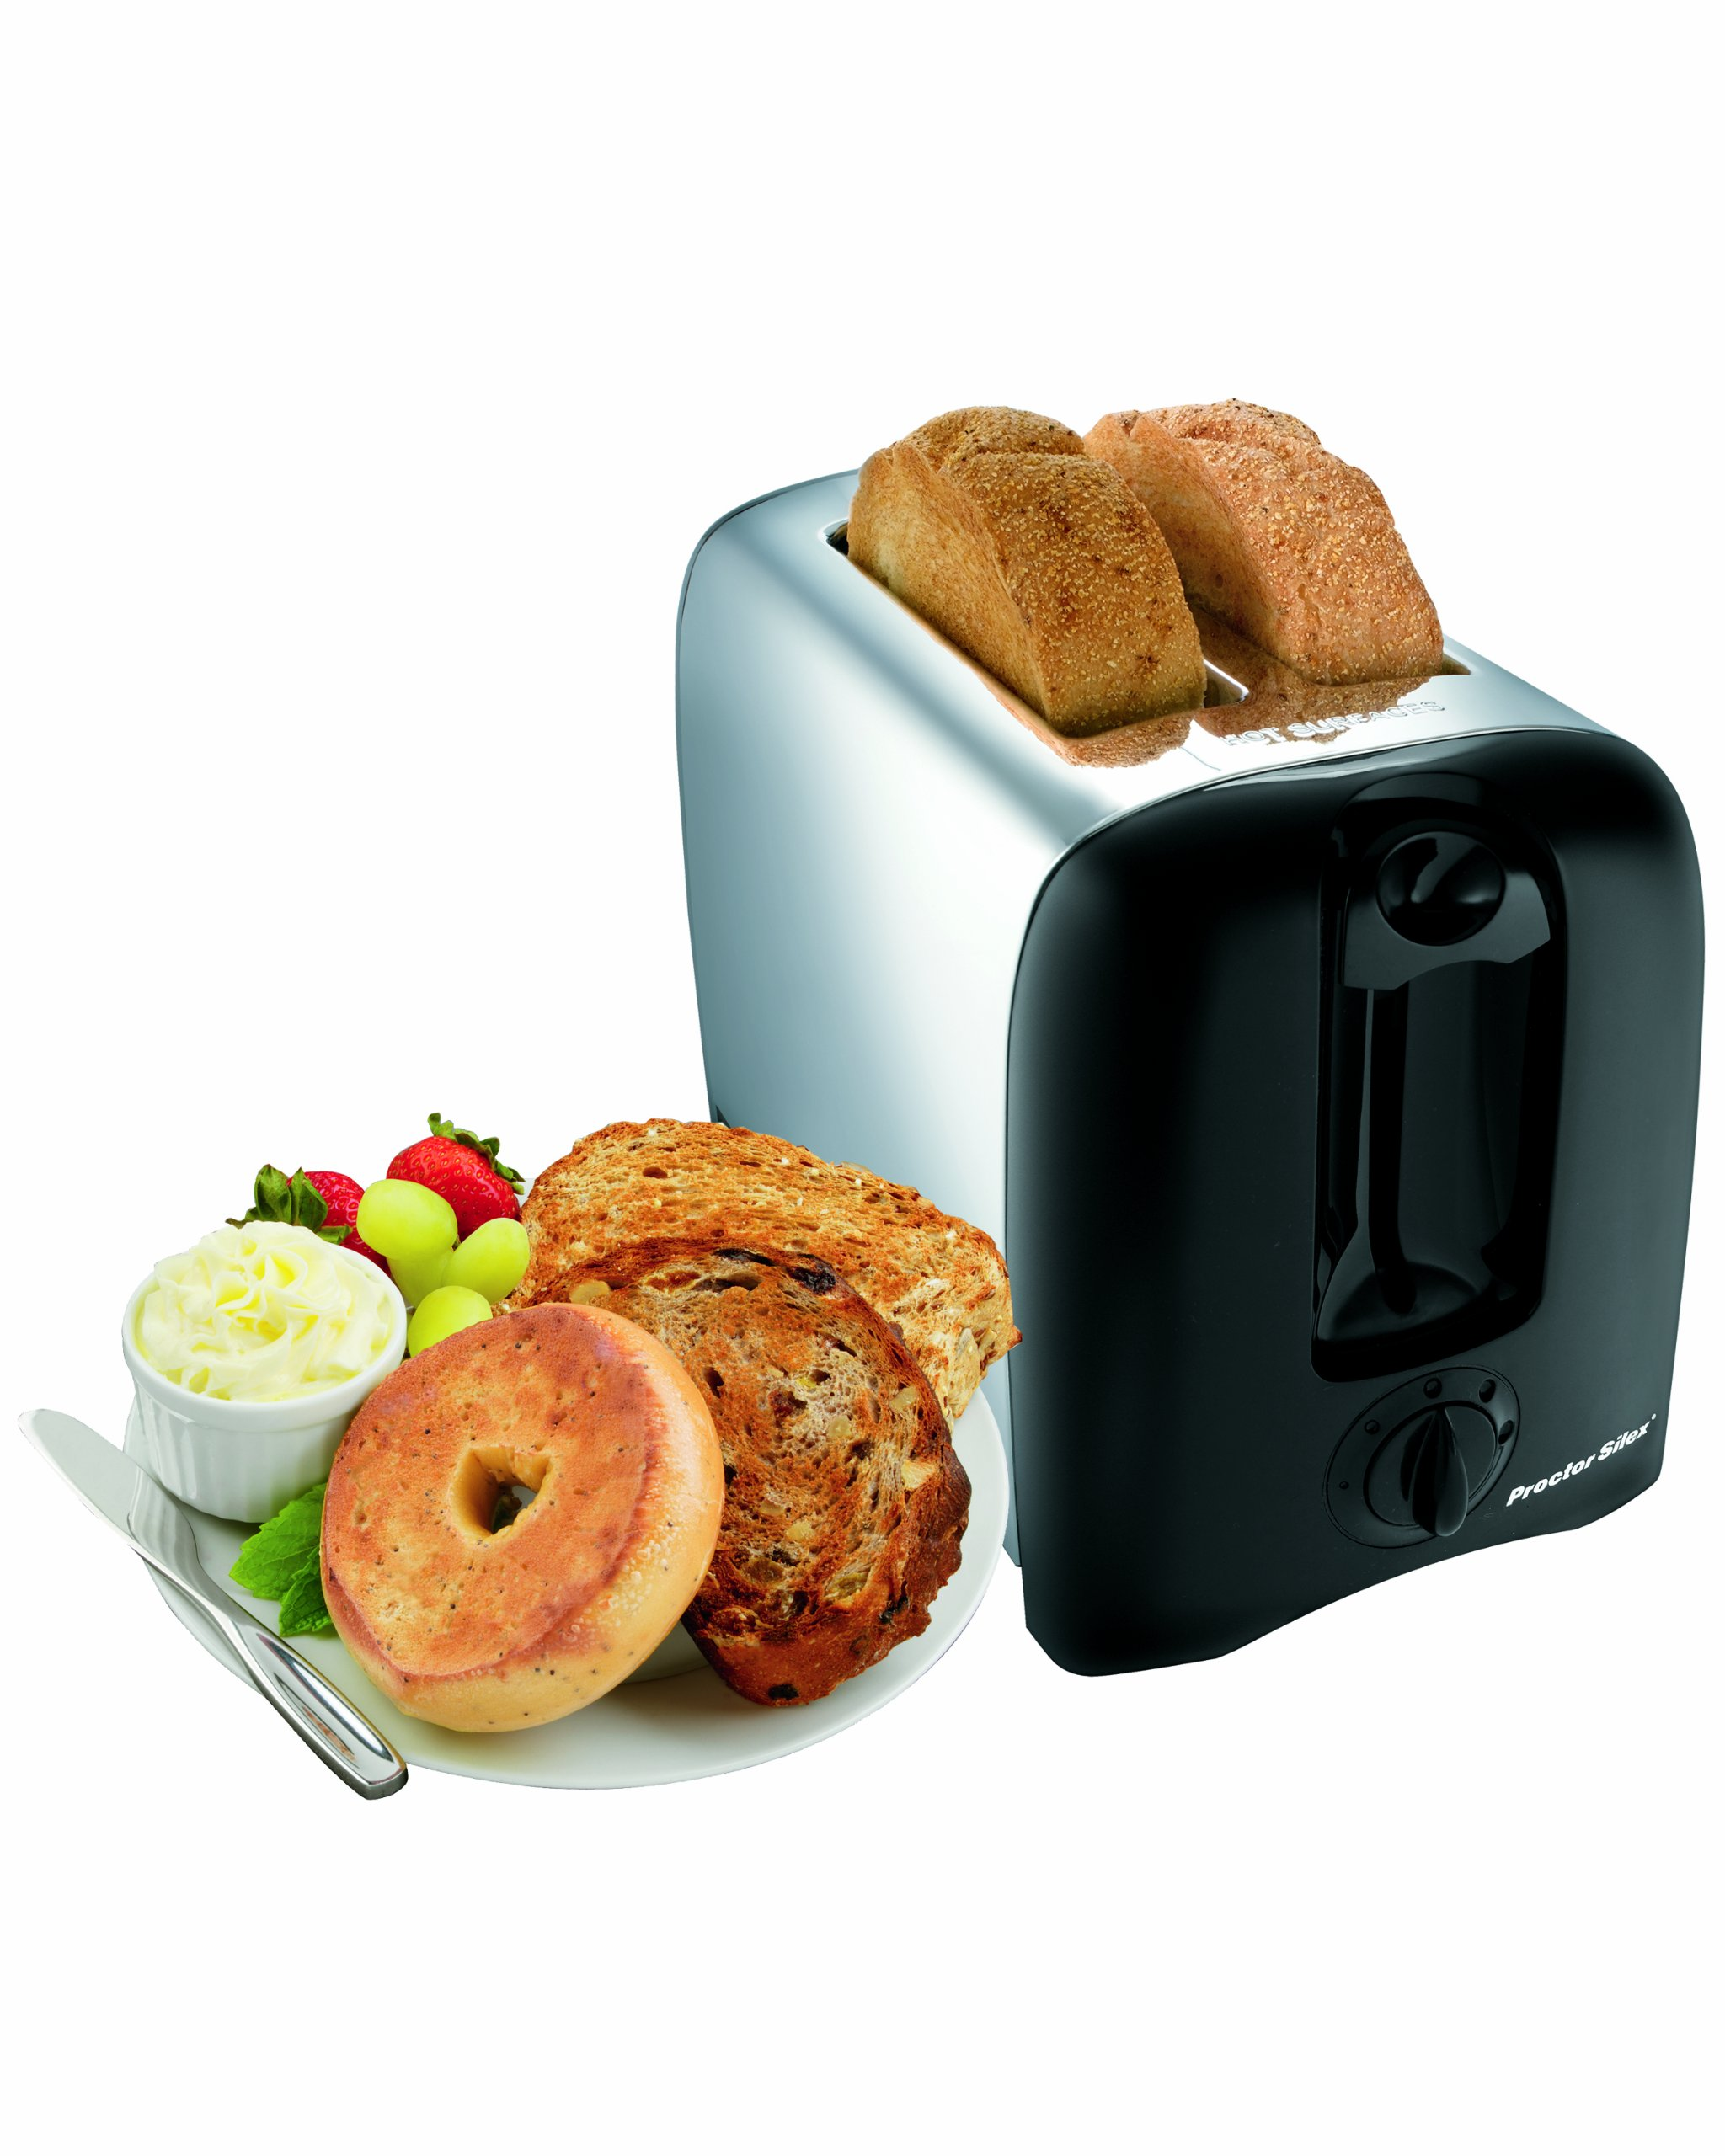 Proctor Silex 22608Y Cool-Wall Toaster